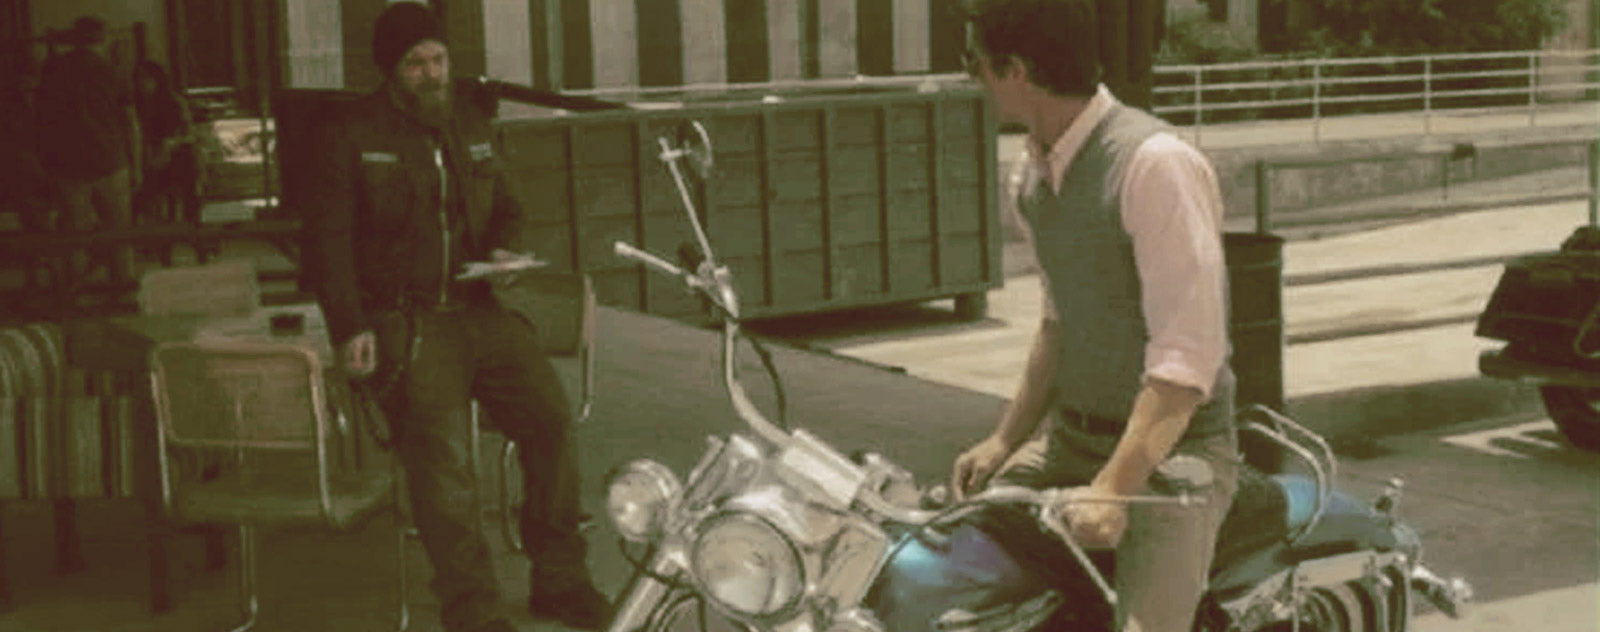 Moto Opie Sons of Anarchy